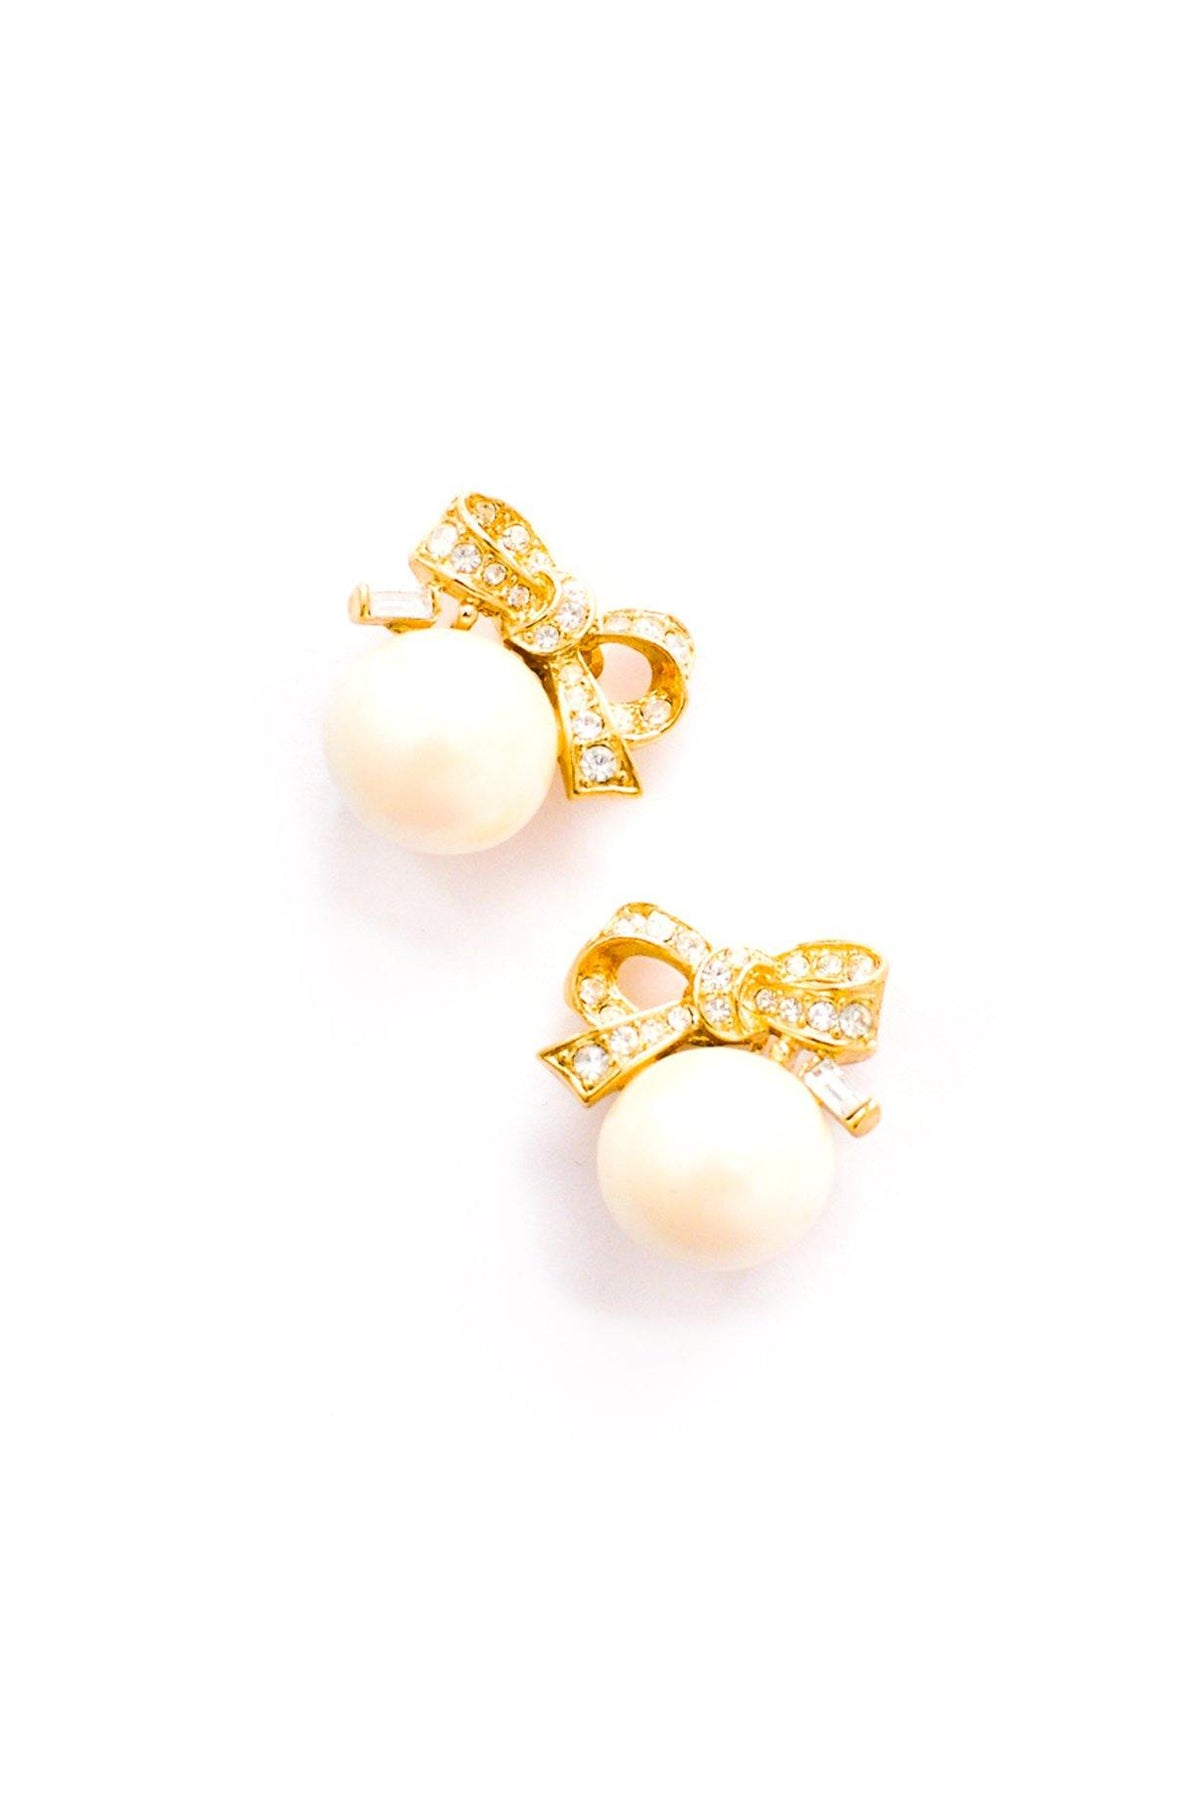 Vintage Nina Ricci bow & pearl earrings from Sweet & Spark.